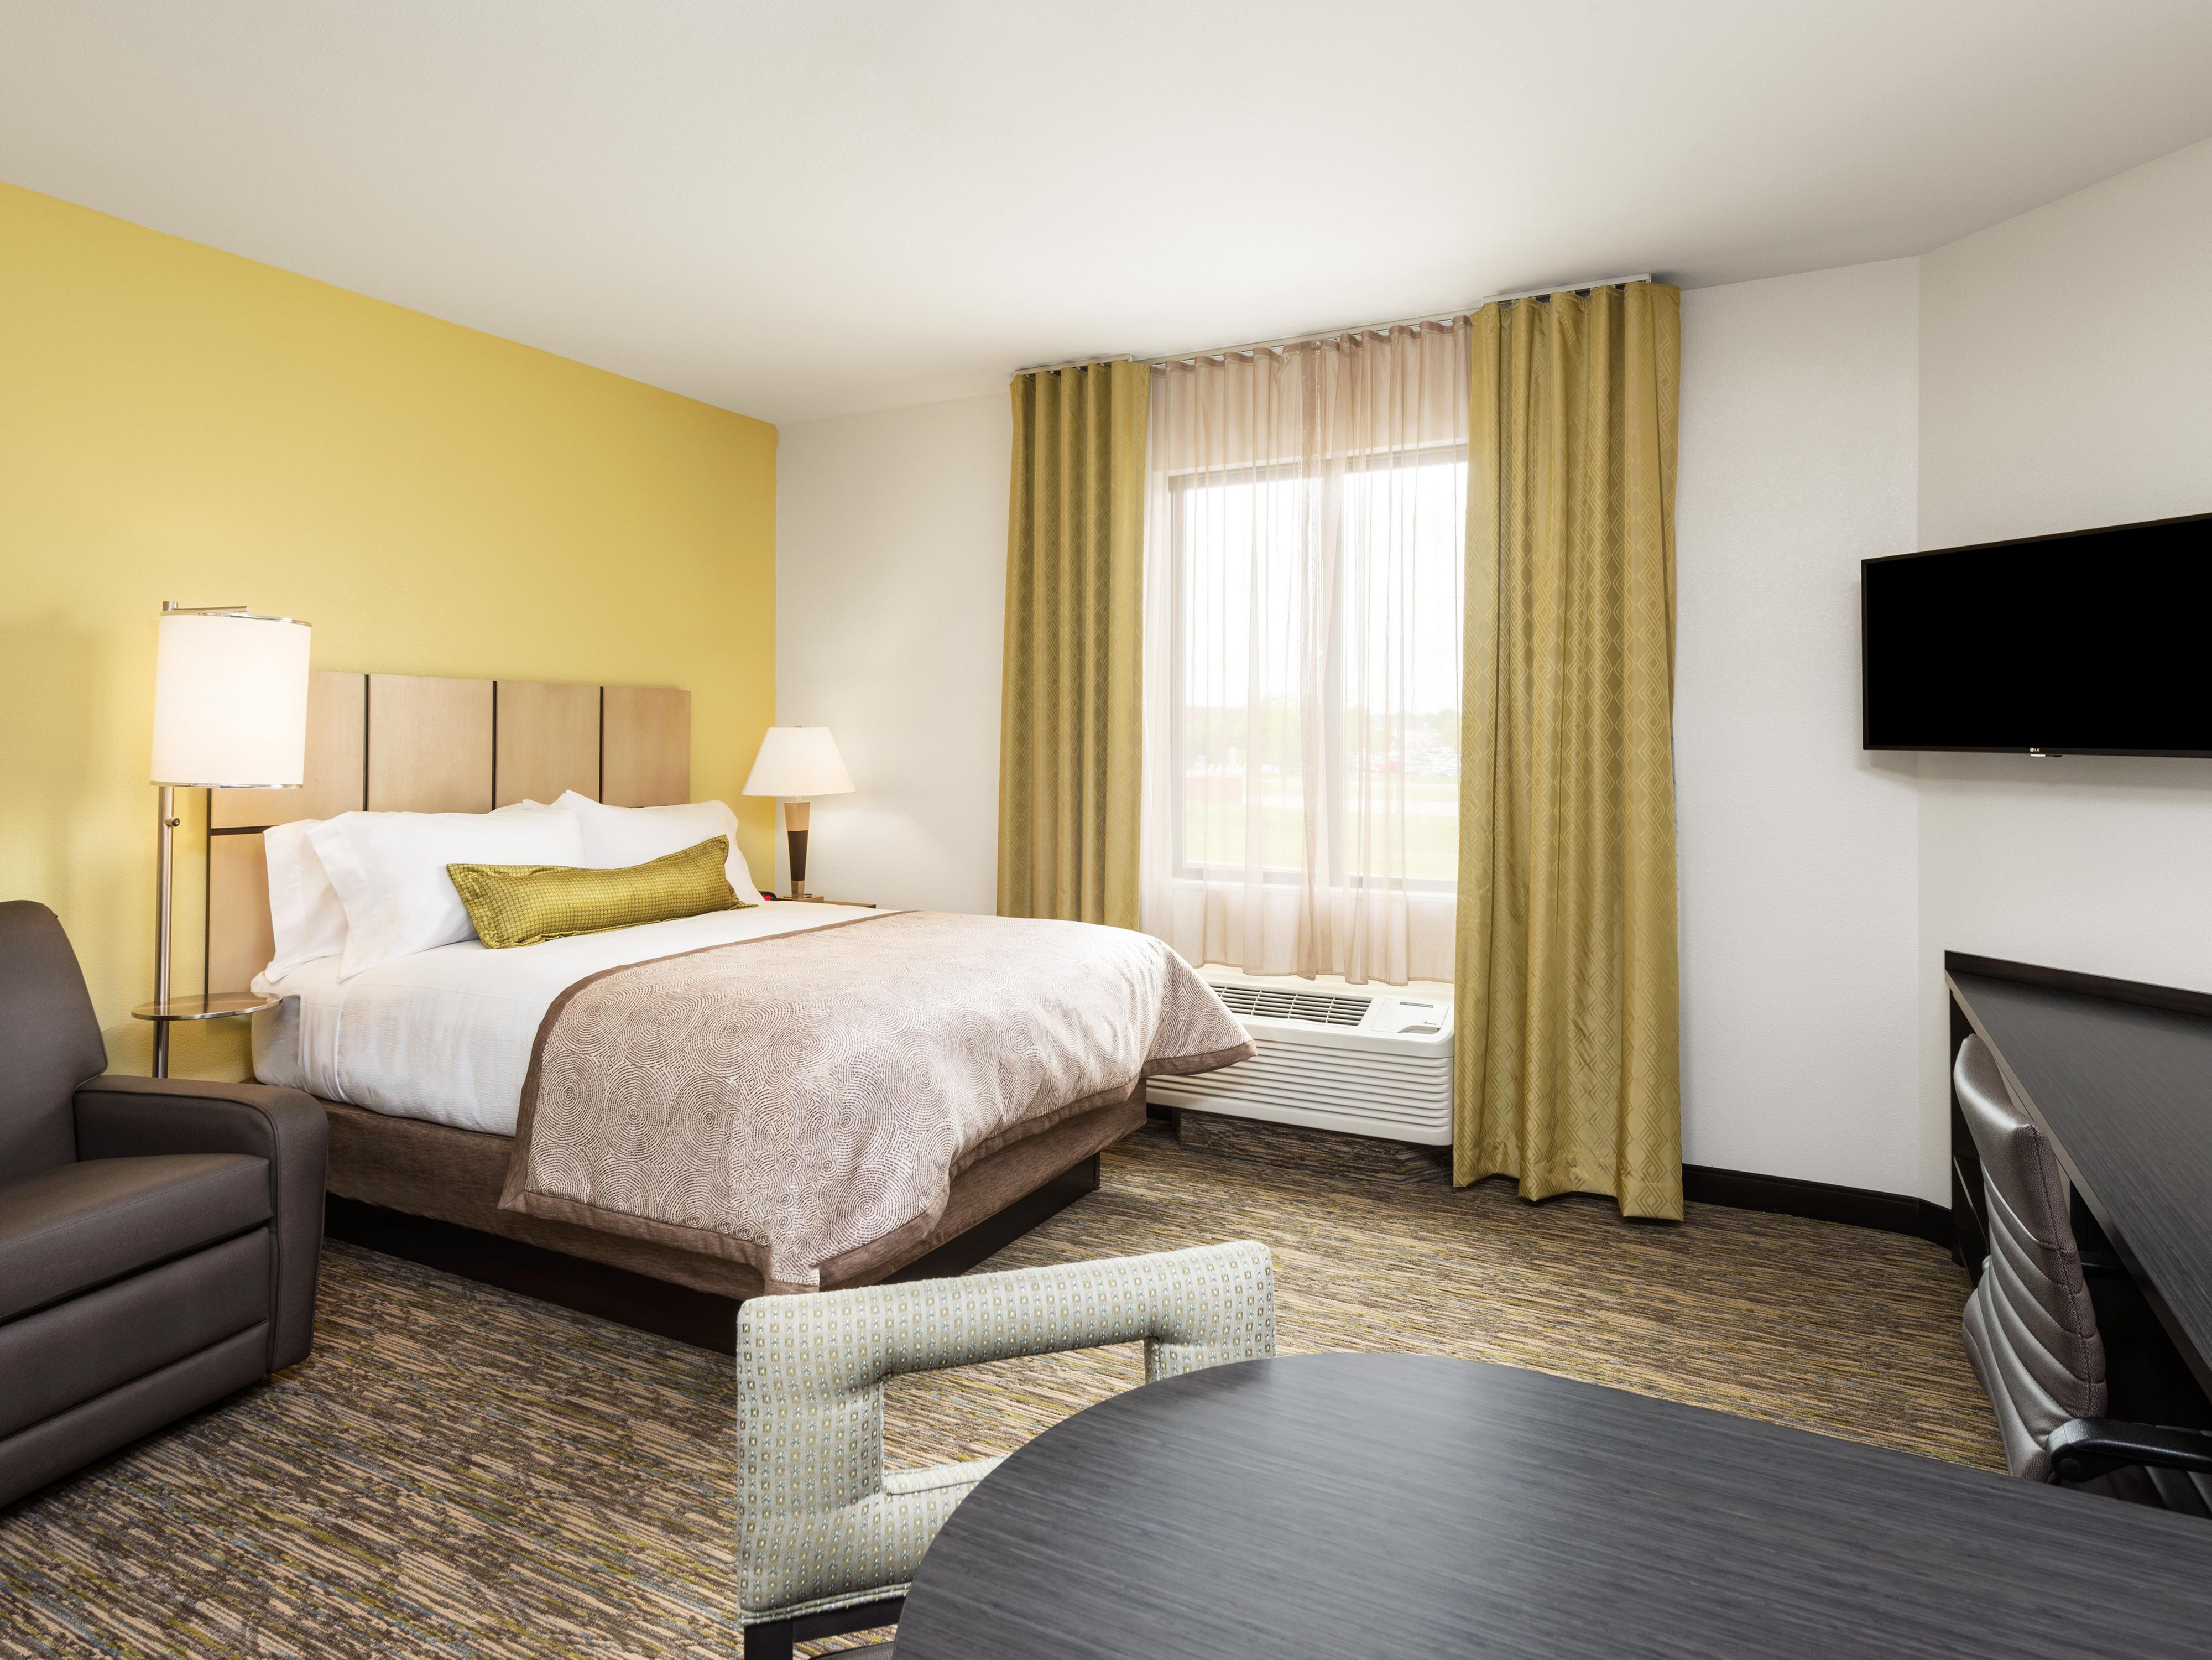 Rooms And Rates For Ihg Army Hotels Building Fort Leonard Wood